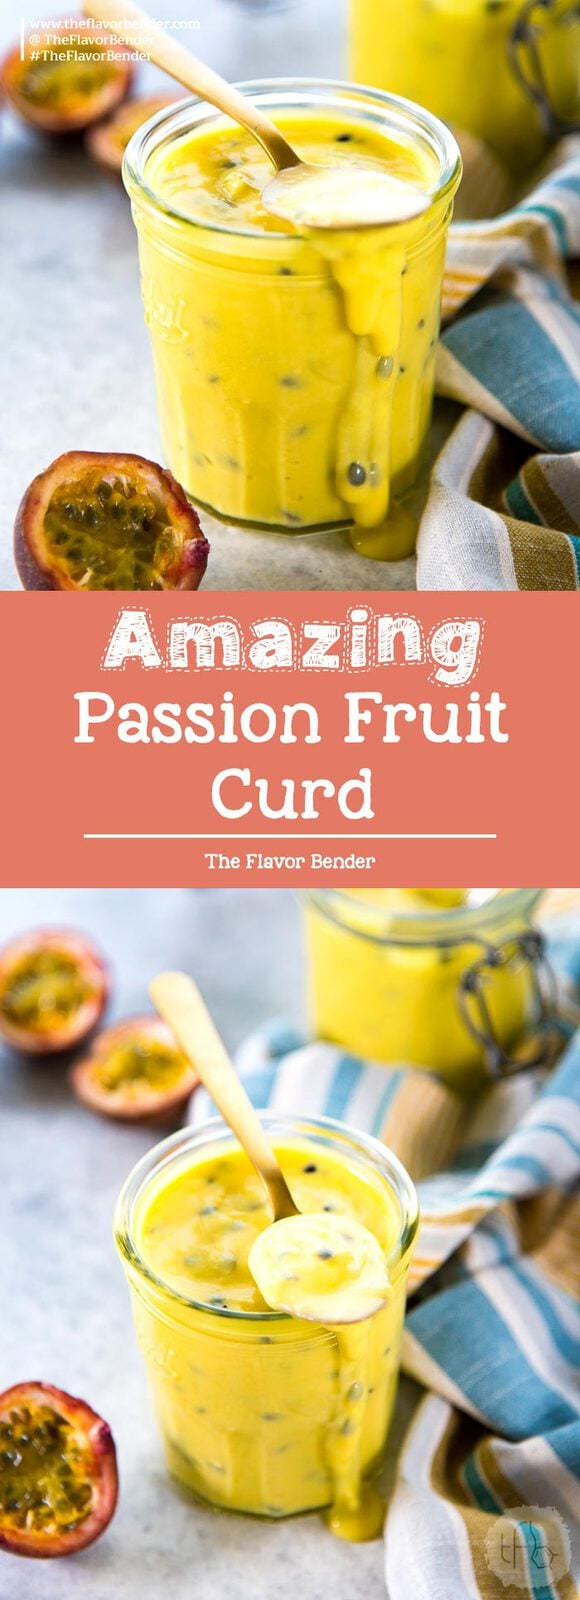 Passion Fruit Curd - A deliciously creamy and tangy passion fruit curd! A great addition to any dessert and adds a refreshing tropical flavor. Freezer friendly too.